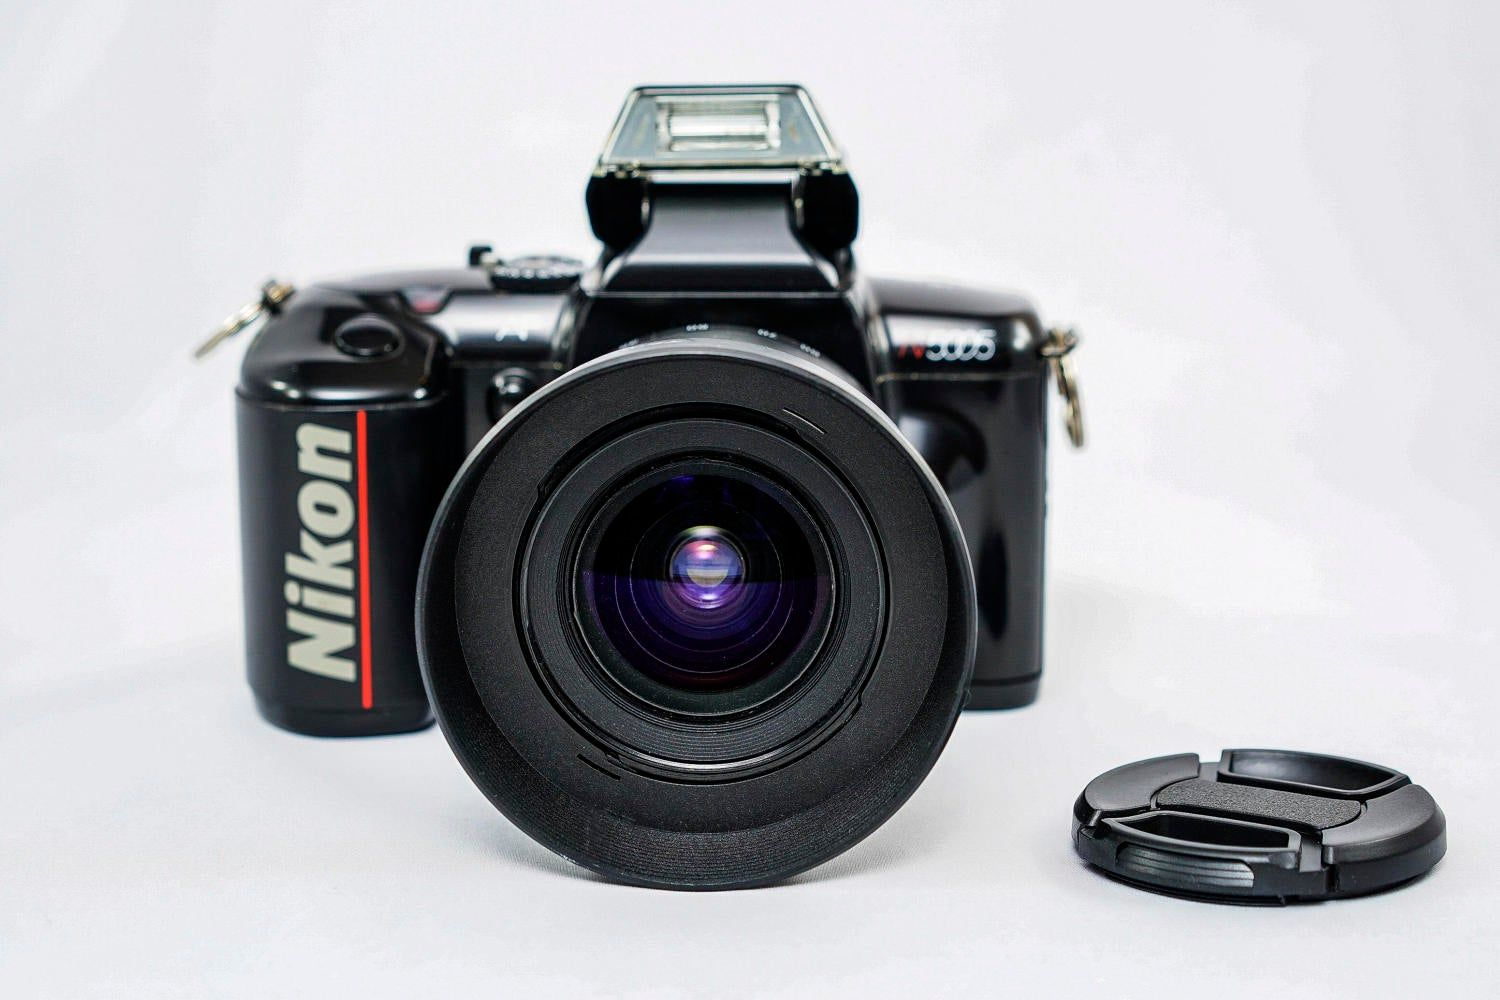 Nikon D5005 Slr Camera With Tamron Af 28 80mm F3 5 Zoom Lens Slr Camera Zoom Lens Lens Aperture